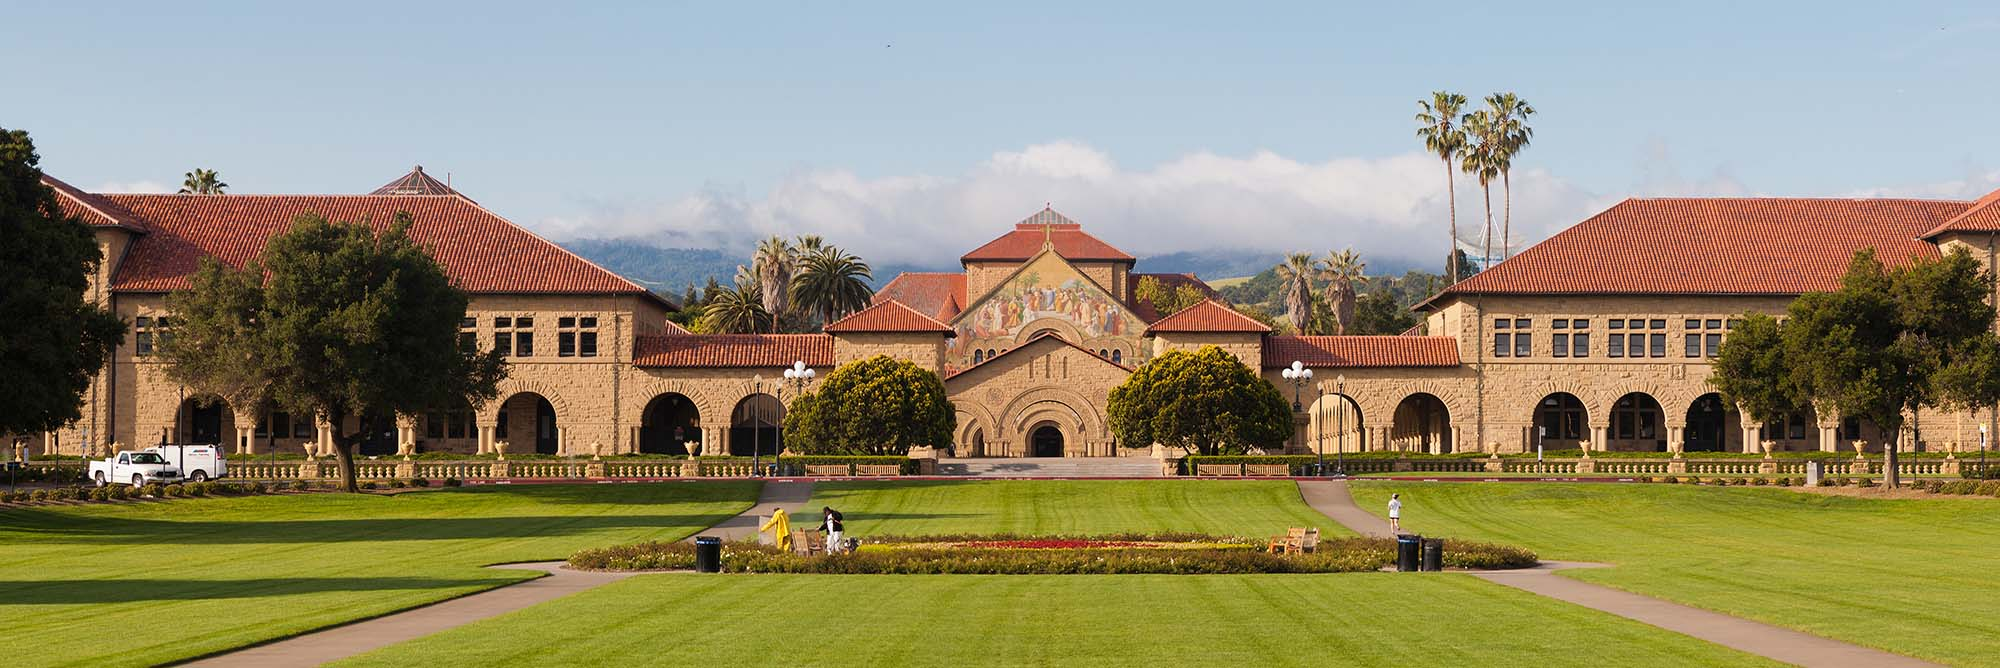 Stanford_Oval_May_2011_panorama_DP.jpg